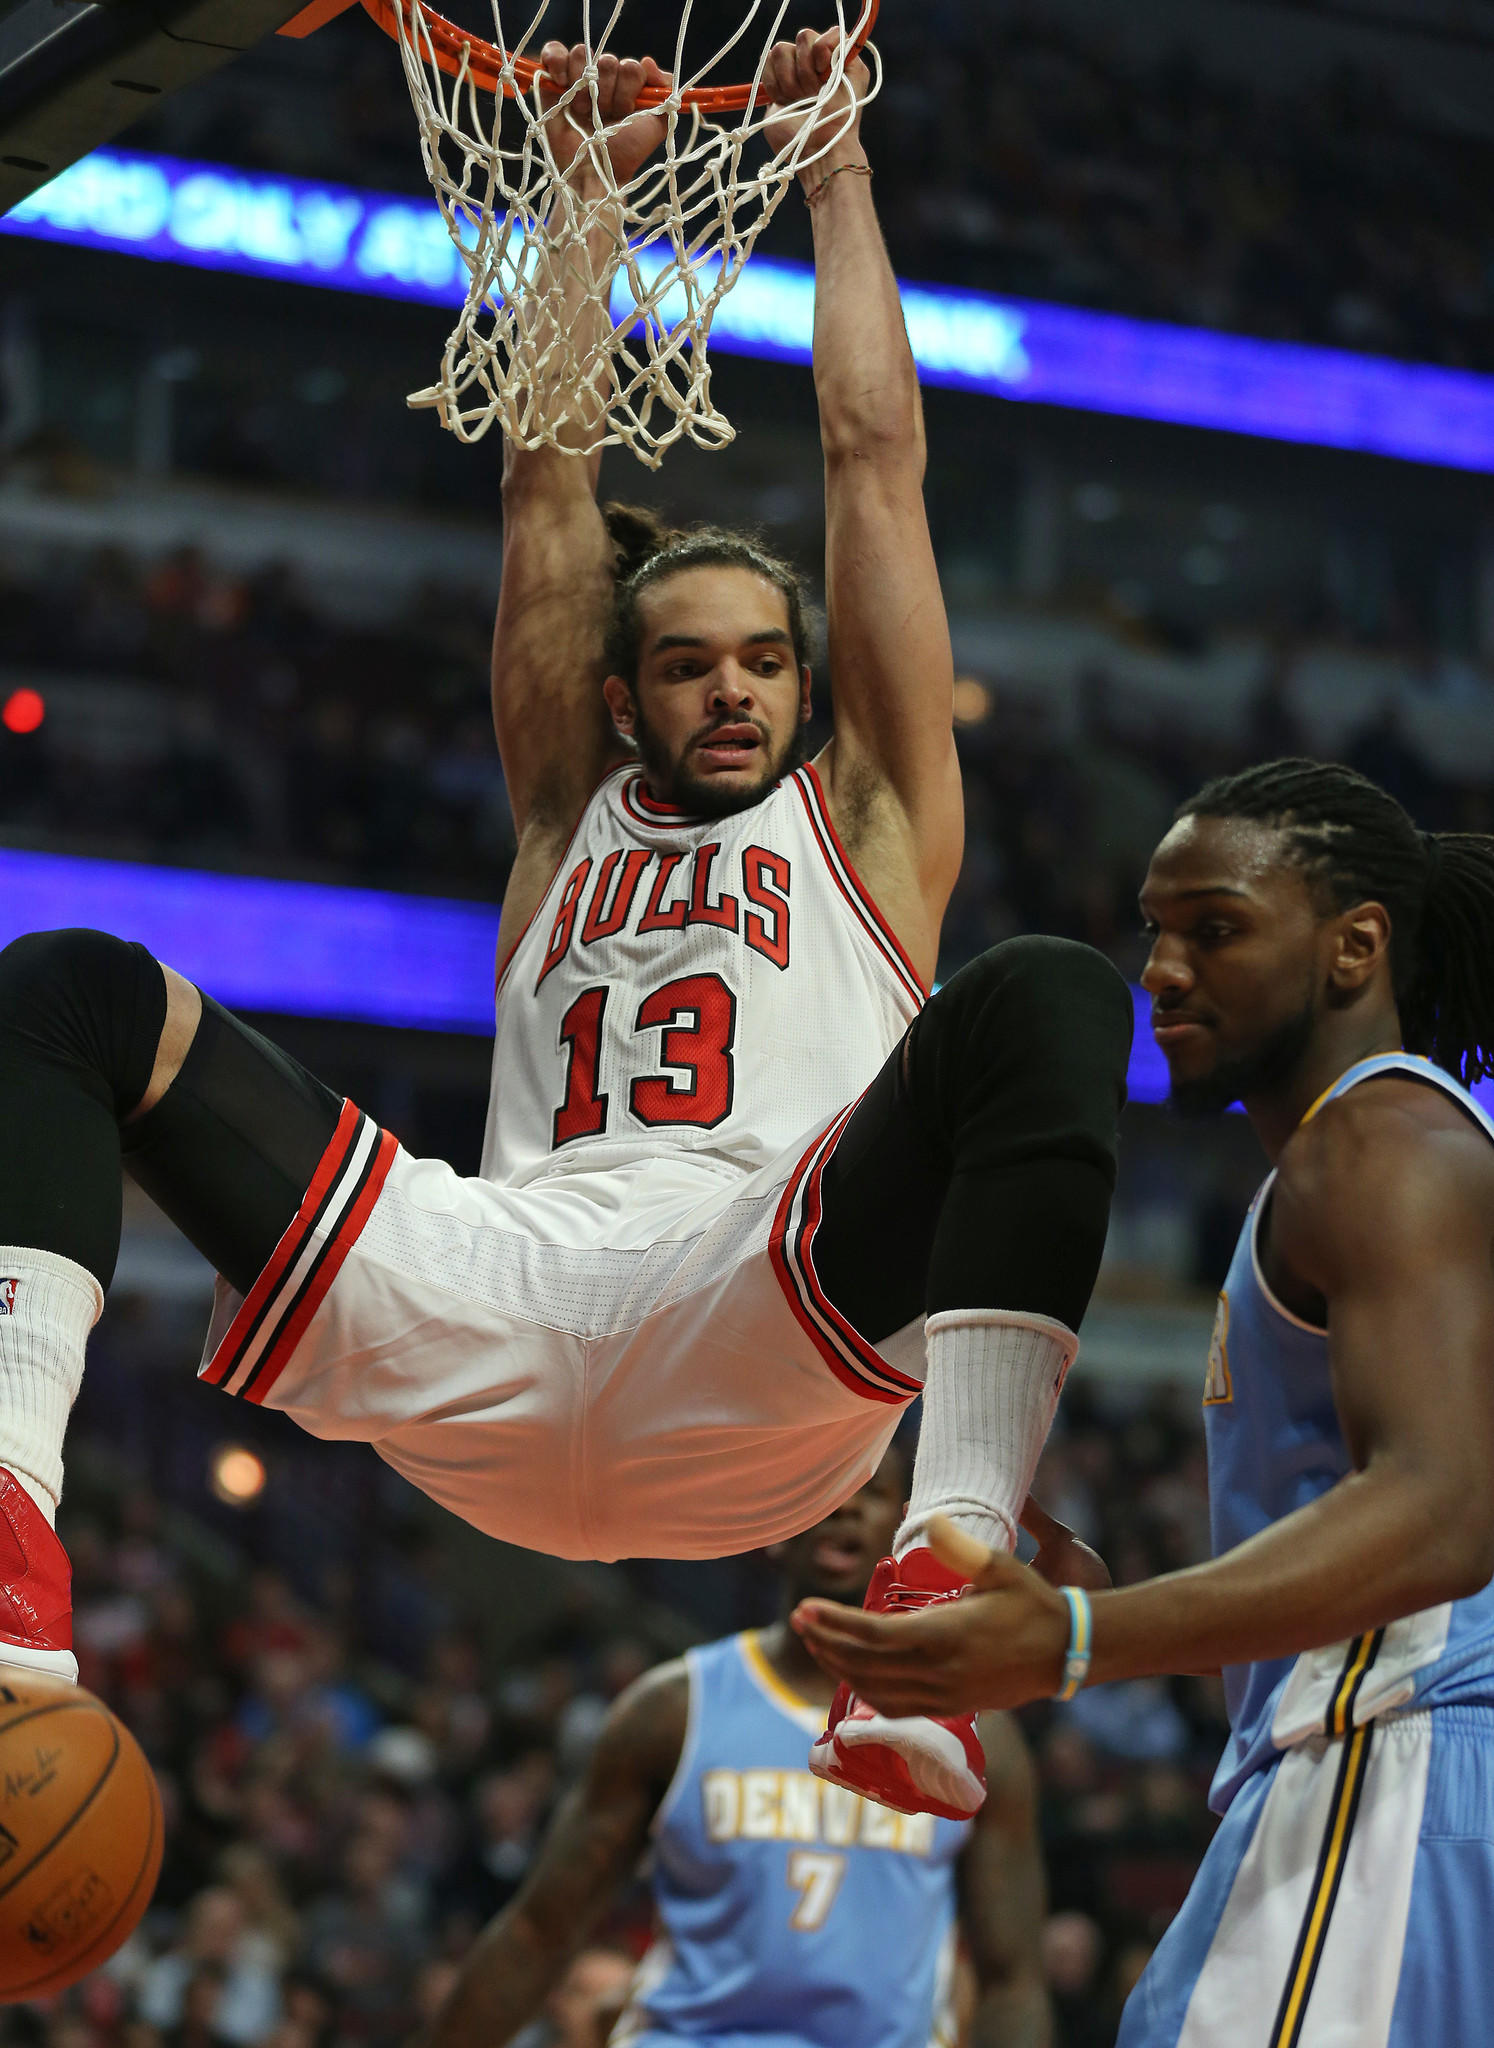 Joakim Noah of the Chicago Bulls (13) looks at Kenneth Faried of the Denver Nuggets (4) during a dunk in the first half at the United Center Friday, Feb. 21, 2014, in Chicago.